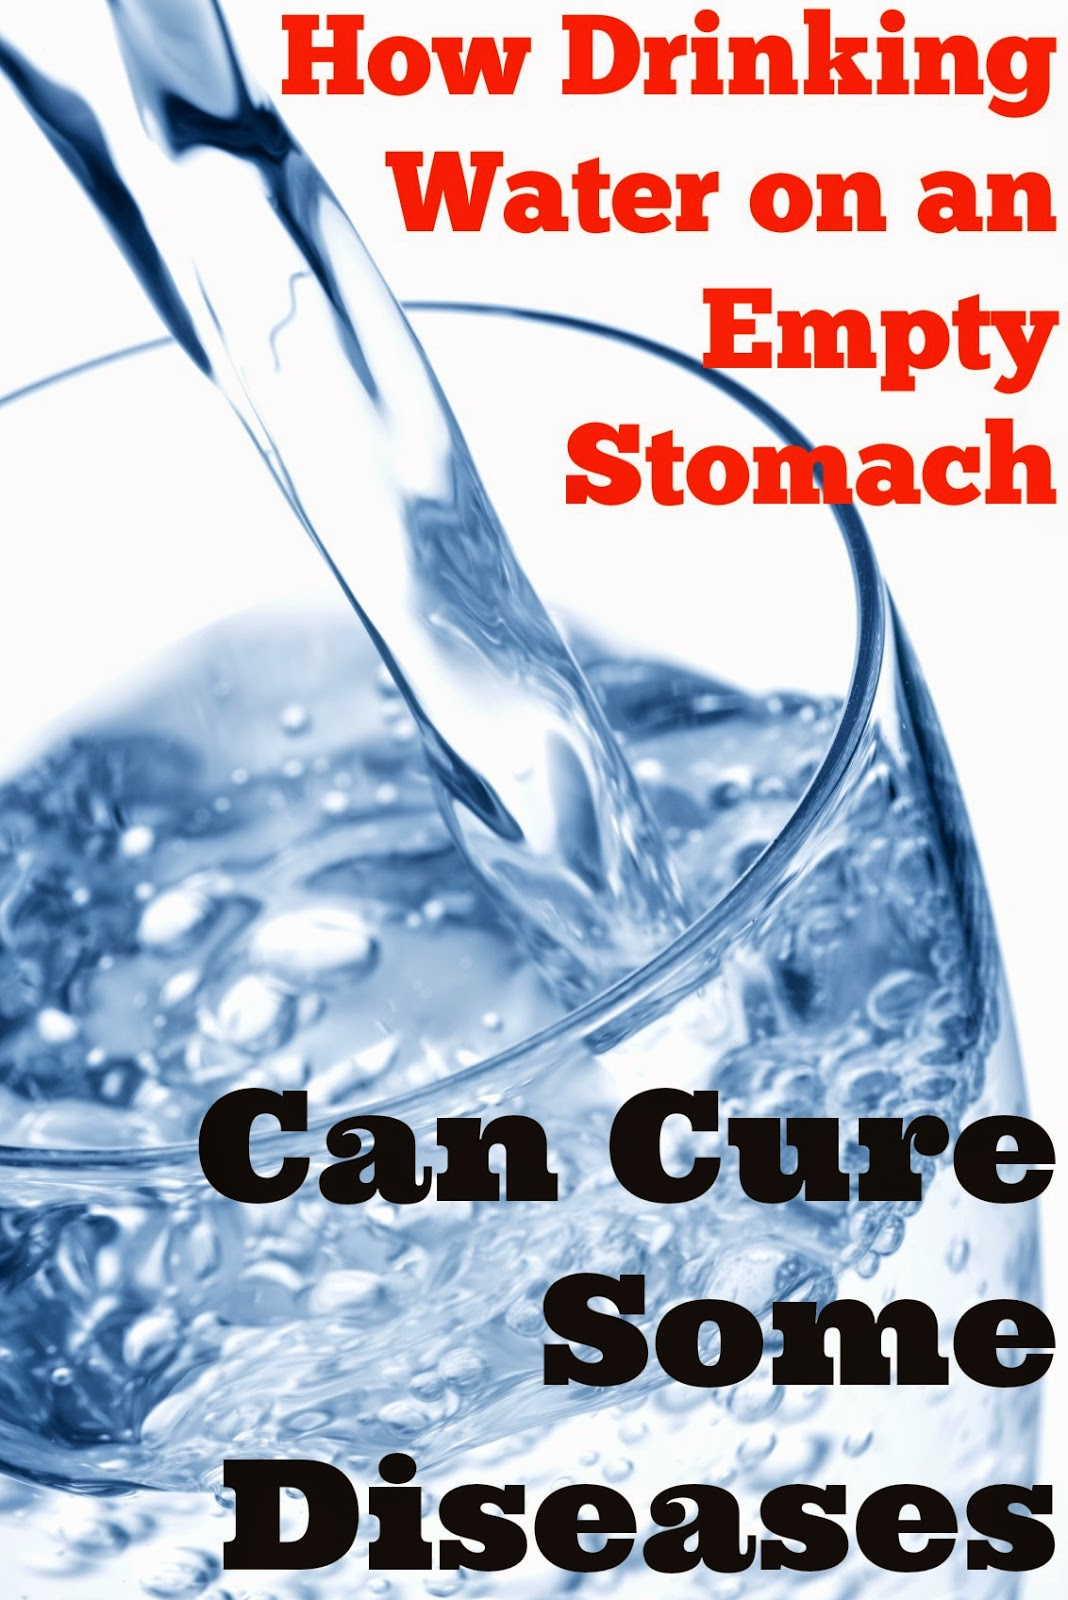 How To Cure Health Ailments by Drinking Water On An Empty ...